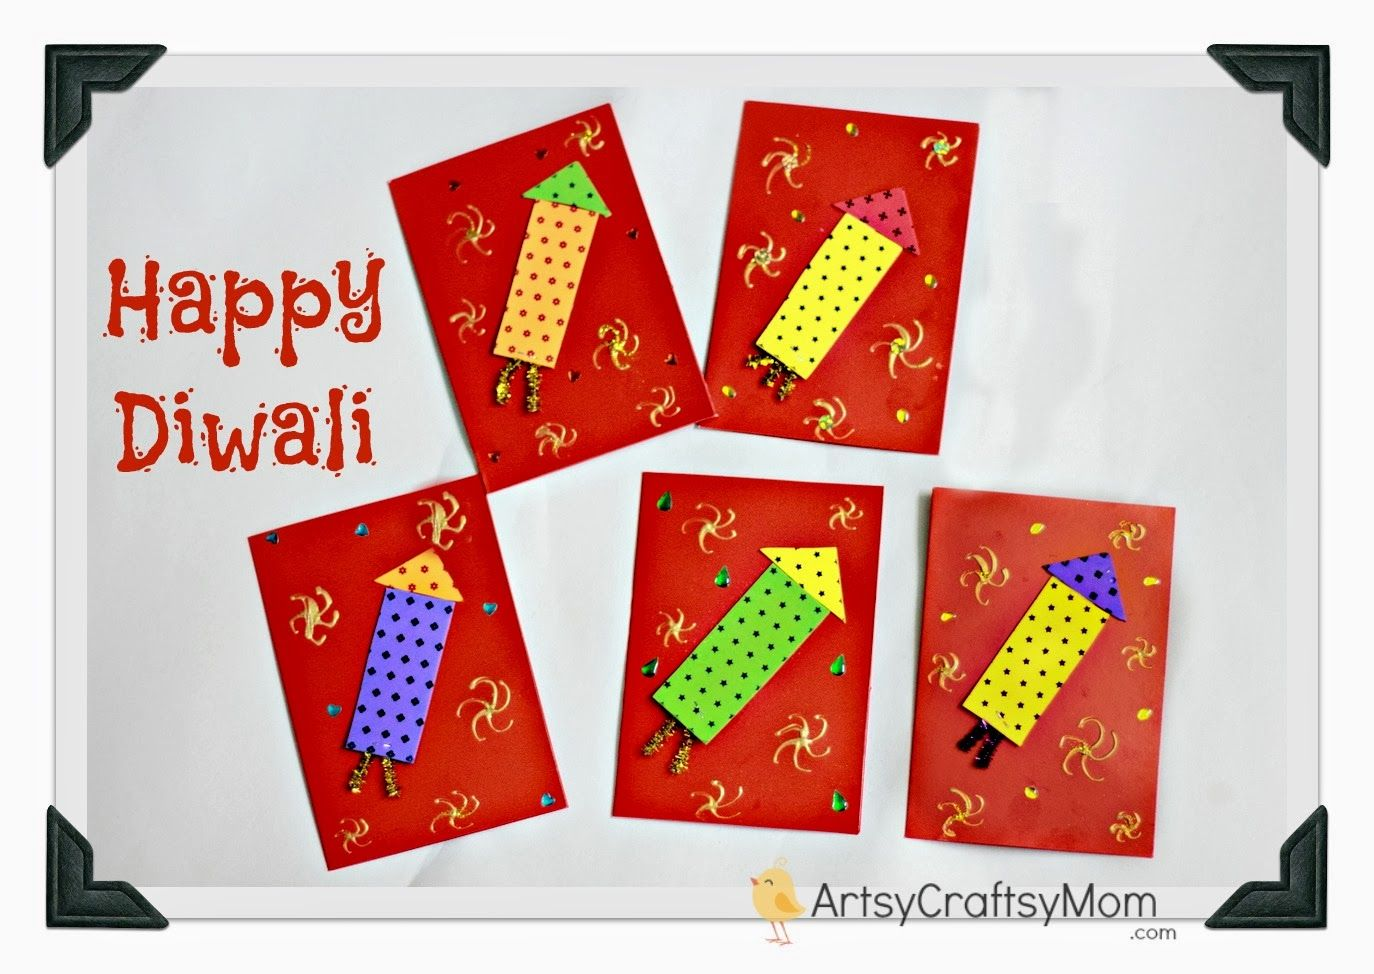 Art And Craft Ideas For Making Greeting Cards Part - 32: Firecracker Themed Diwali Greeting Card For Kids